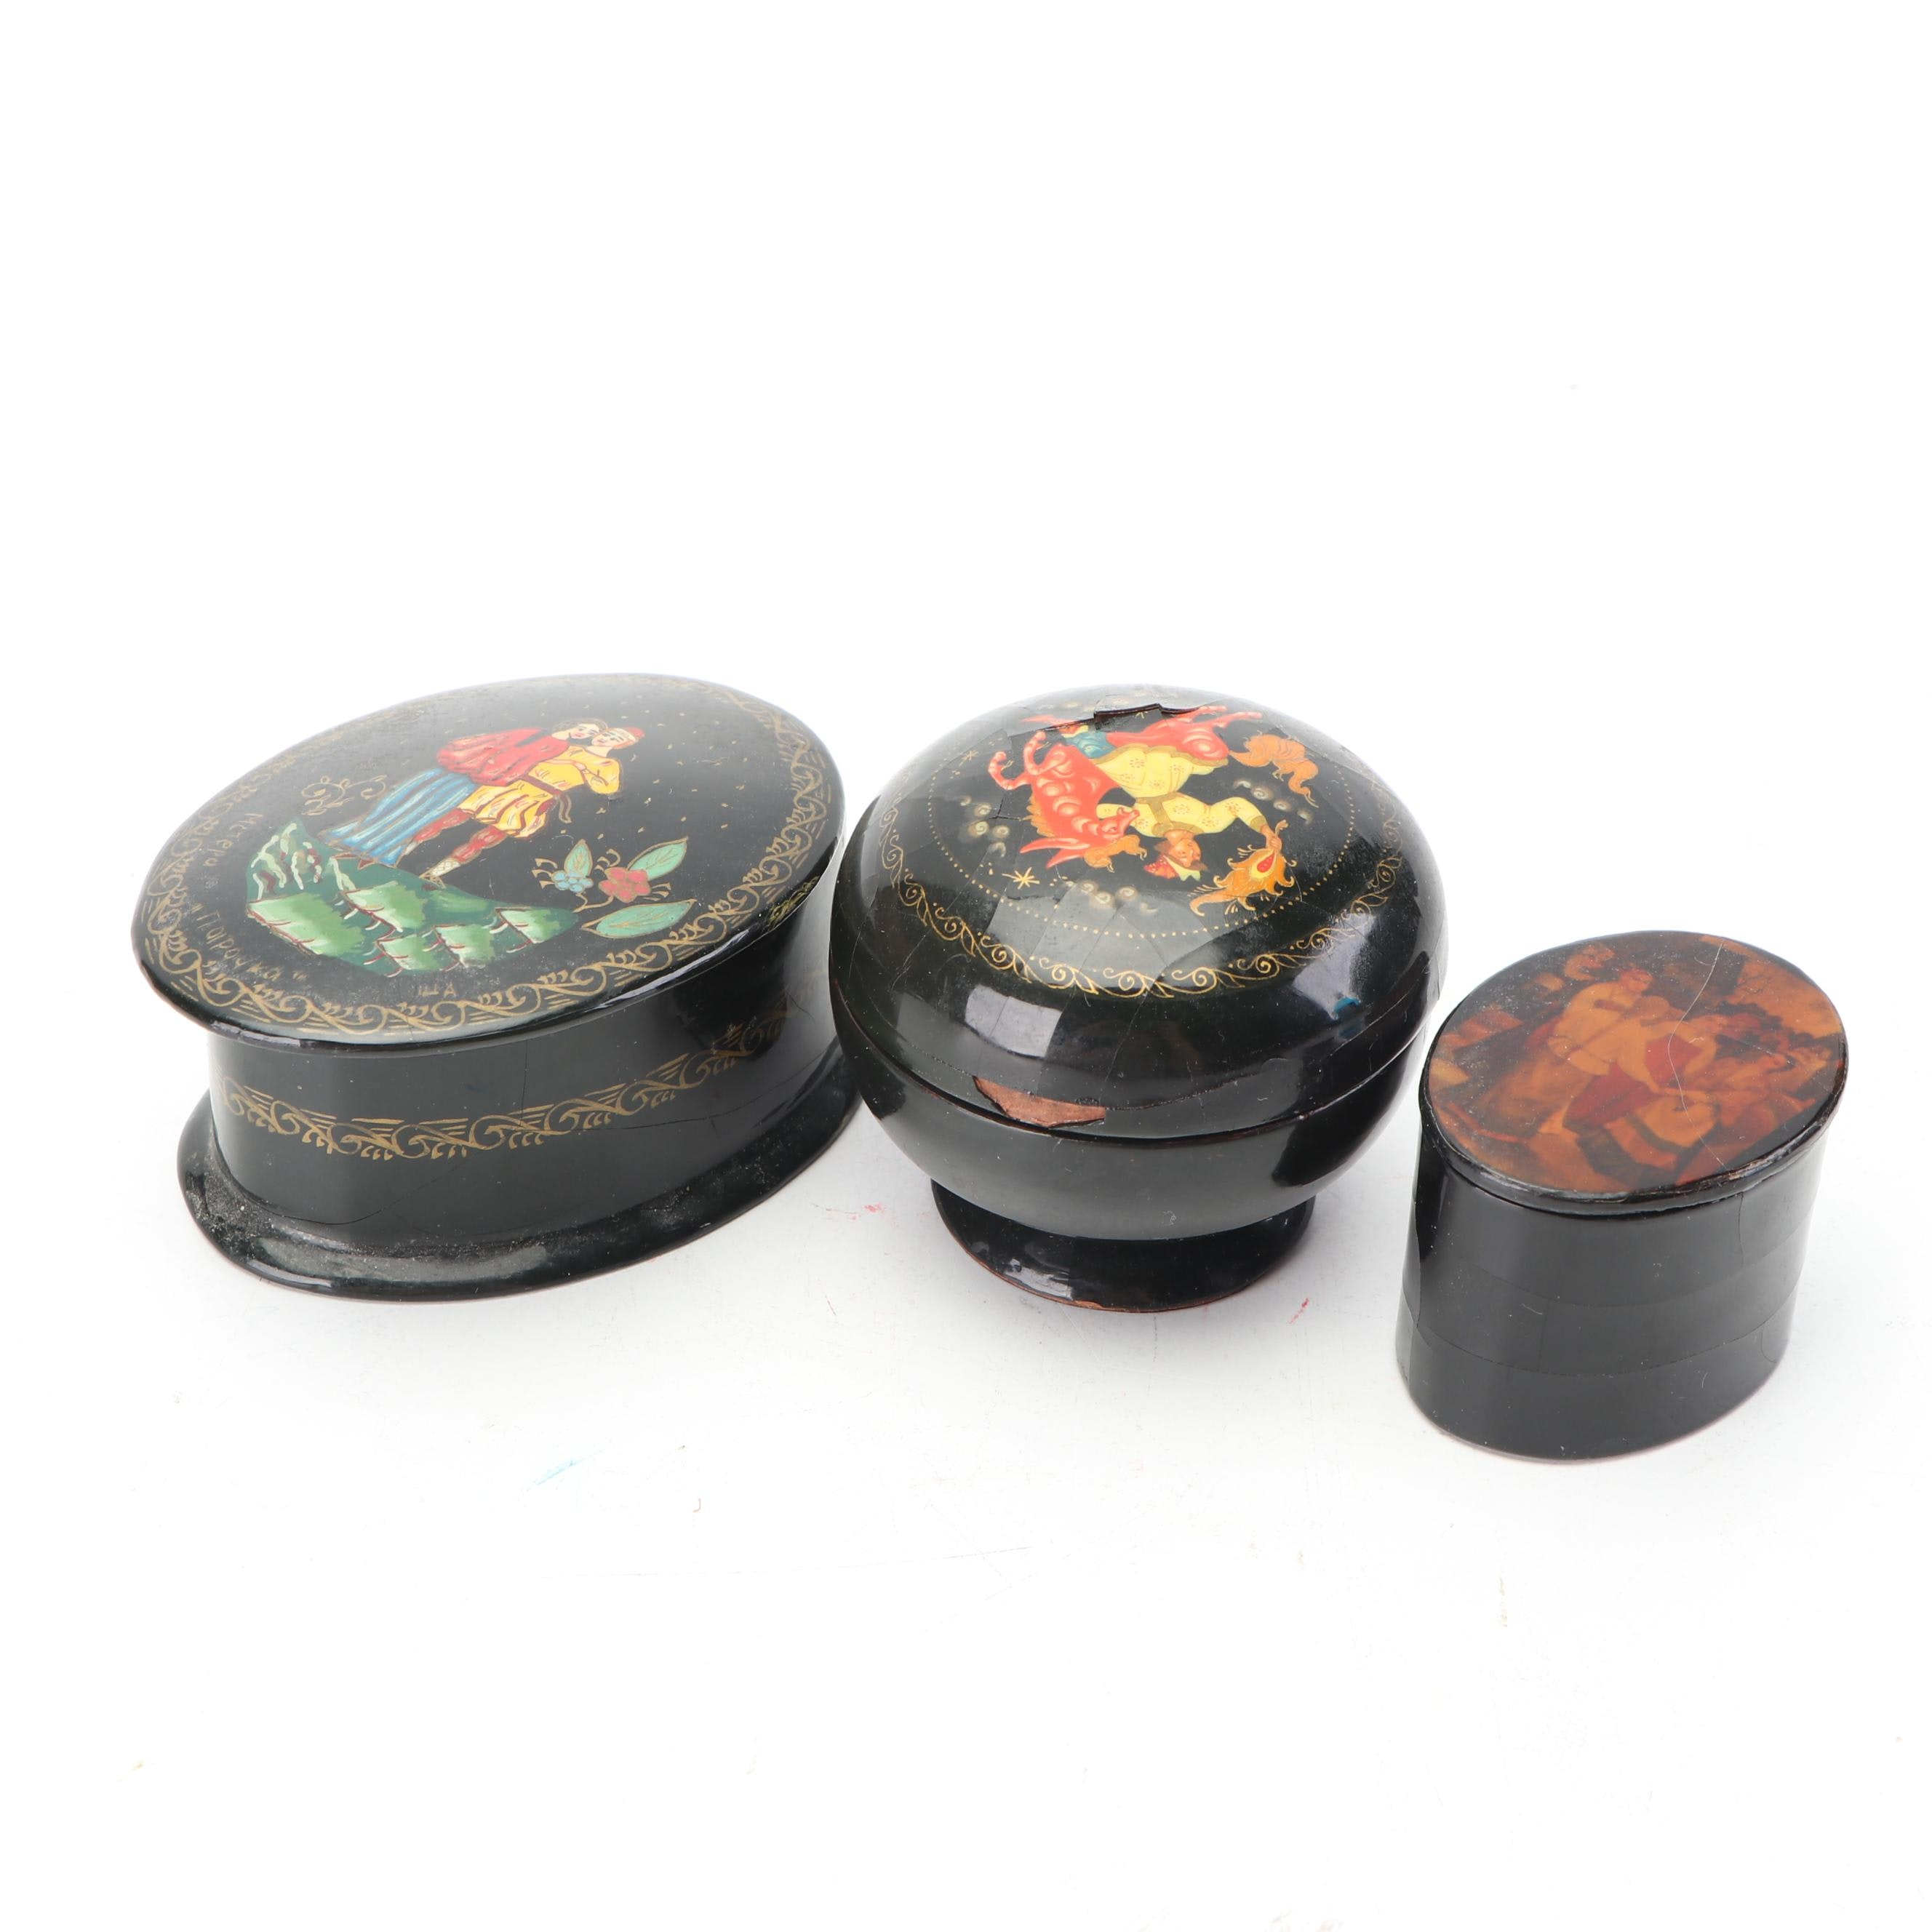 Russian Hand-Painted Lacquered Trinket Boxes